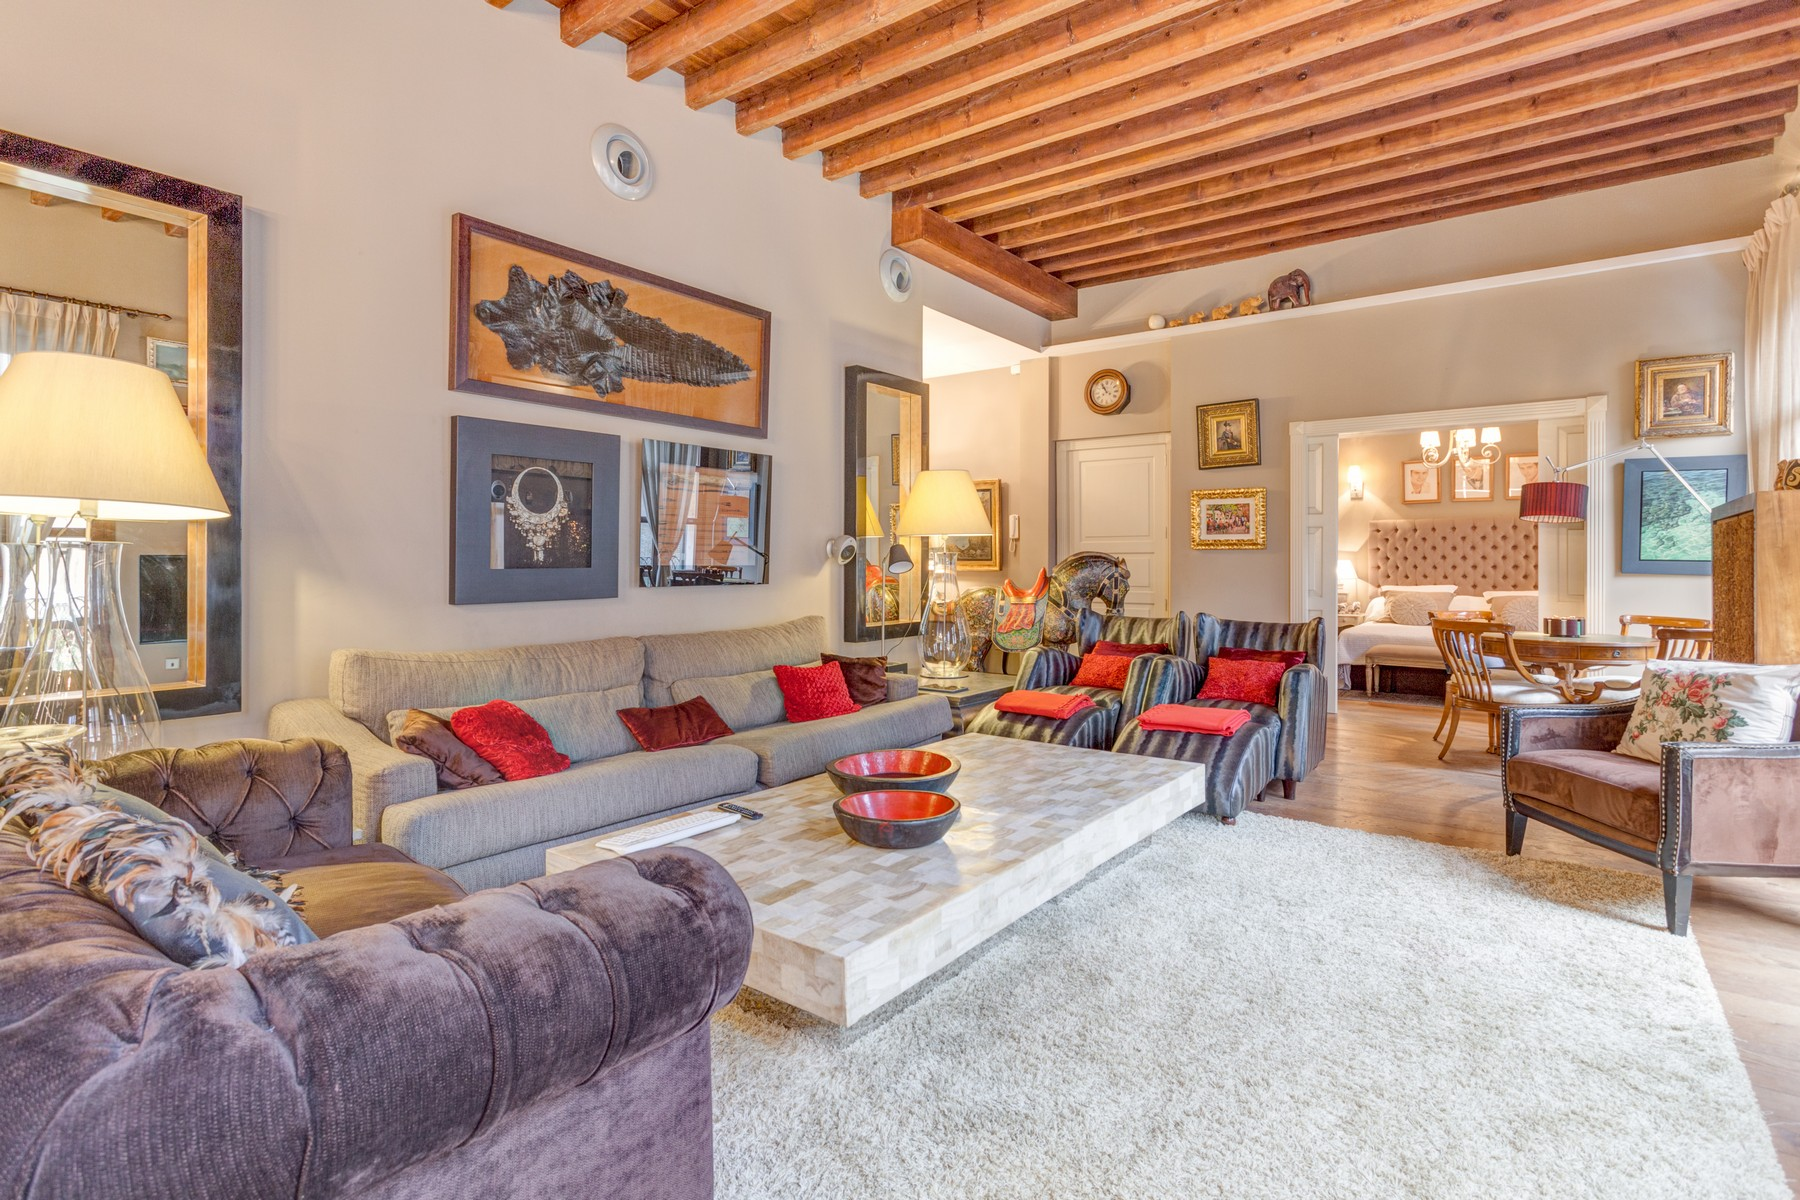 Apartment for Sale at Apartment in Palma old Town Palma Center, Mallorca 07012 Spain